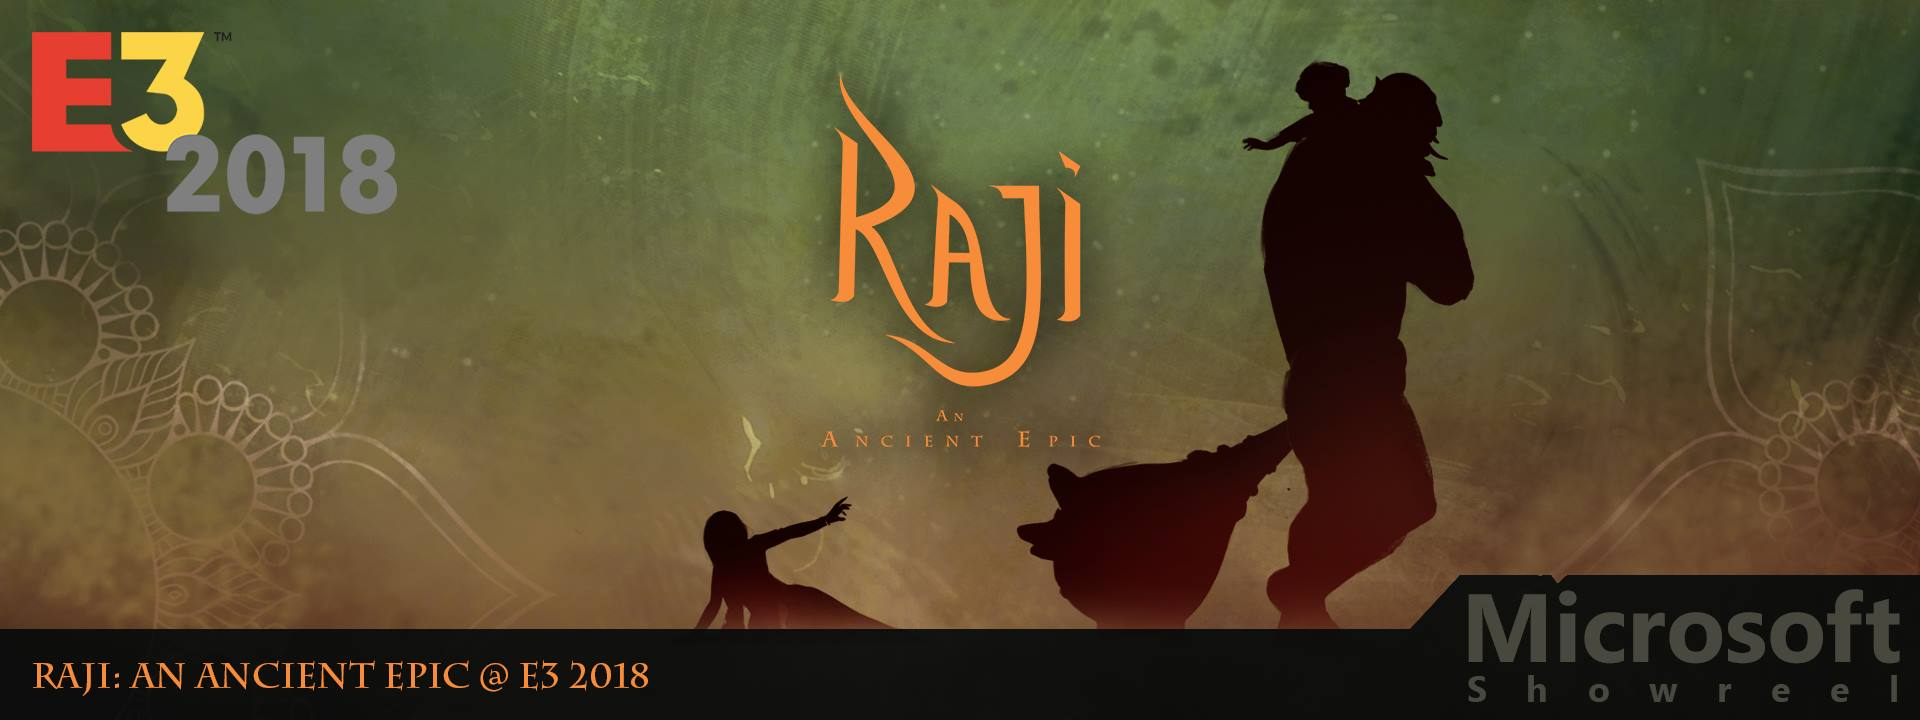 Raji : An Ancient Epic Features Prominently During E3 2018